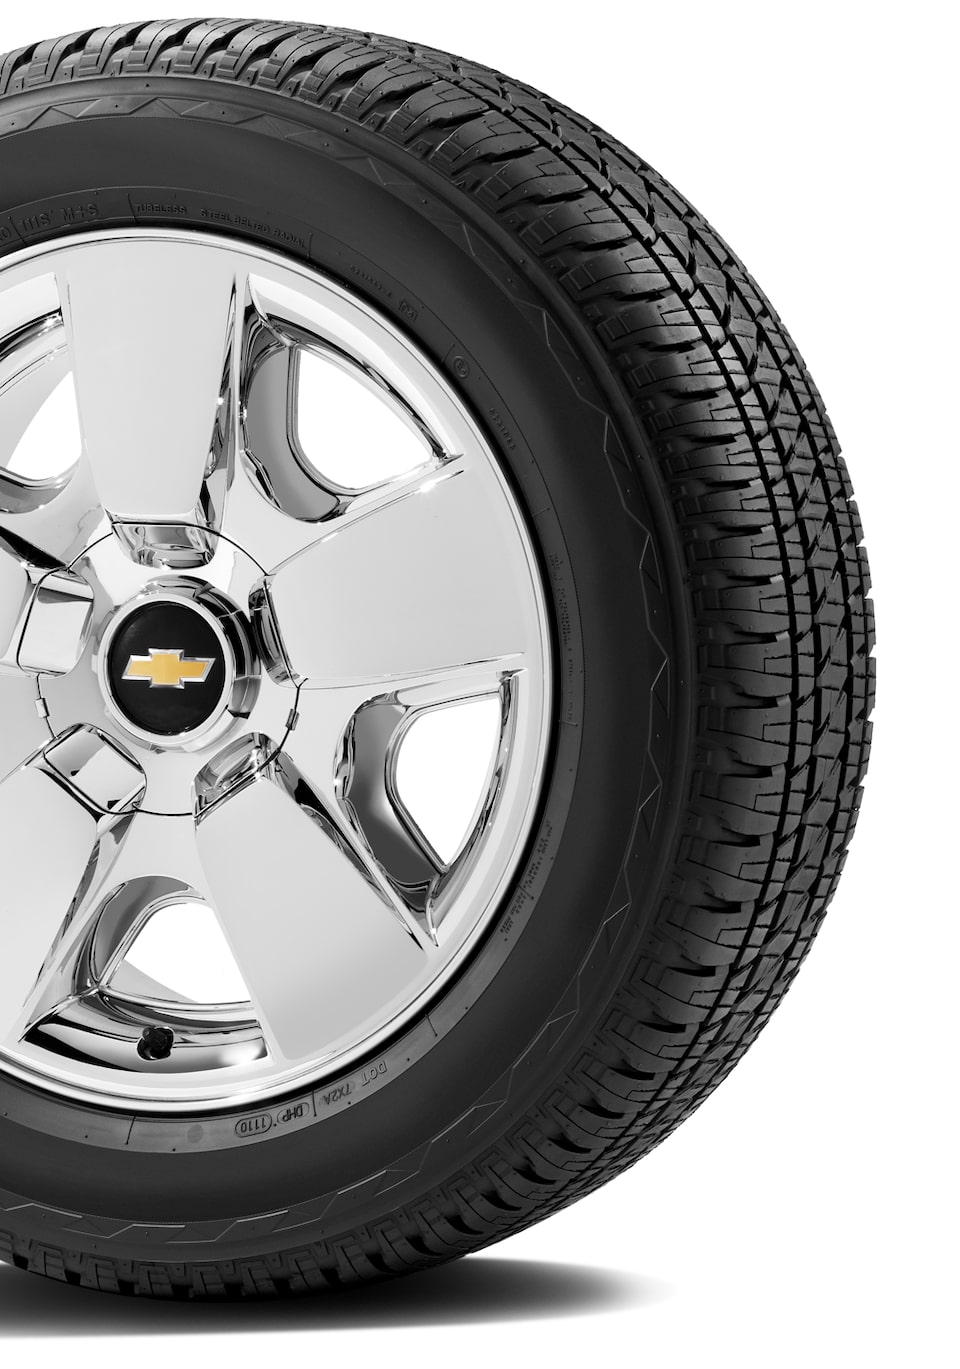 Chevrolet Protection Tire & Wheel Overview Video